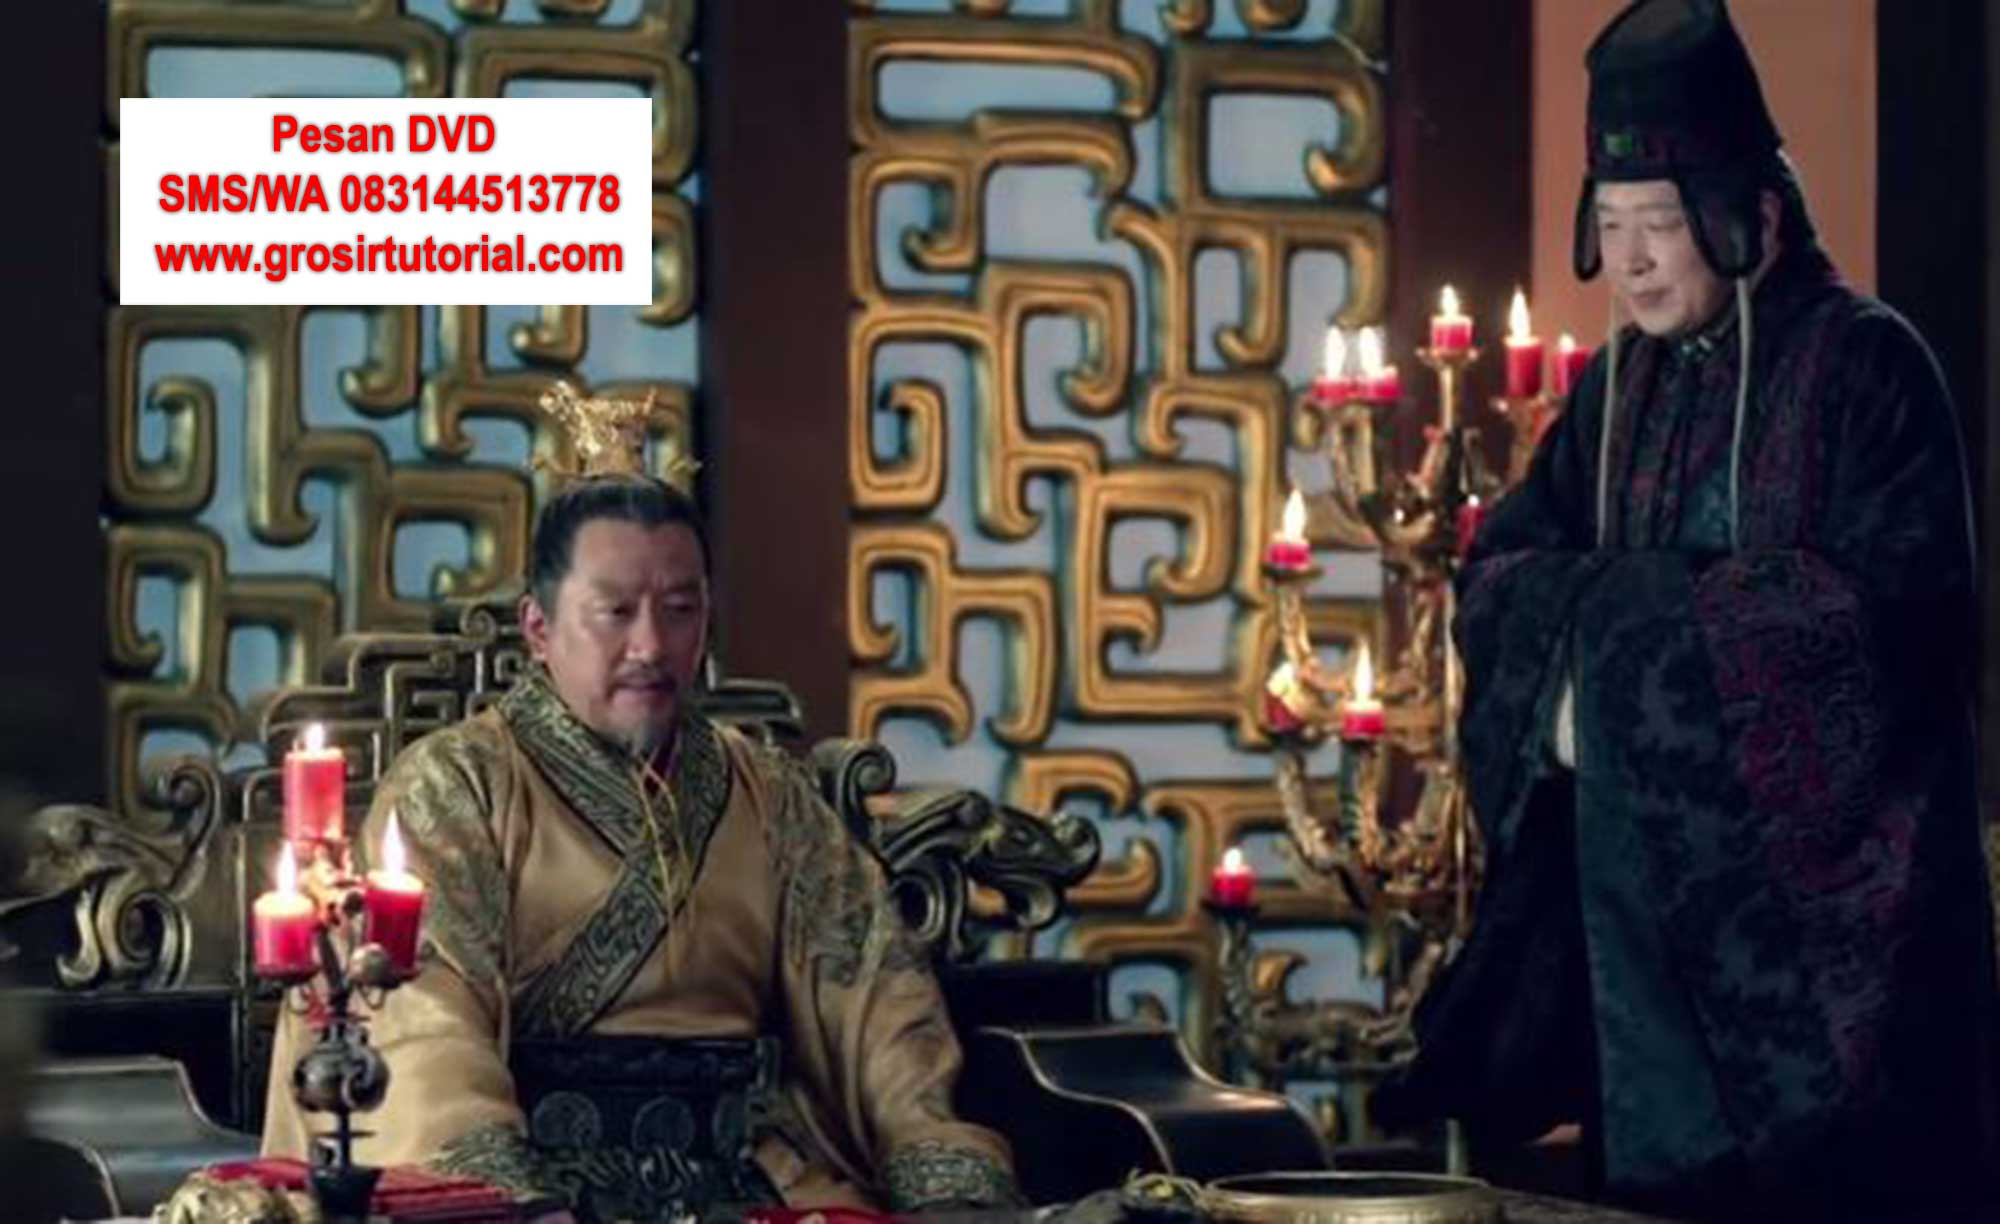 Pesan-DVD-Silat-Mandarin-The-Rankings-Of-Lang-Ya-Bang